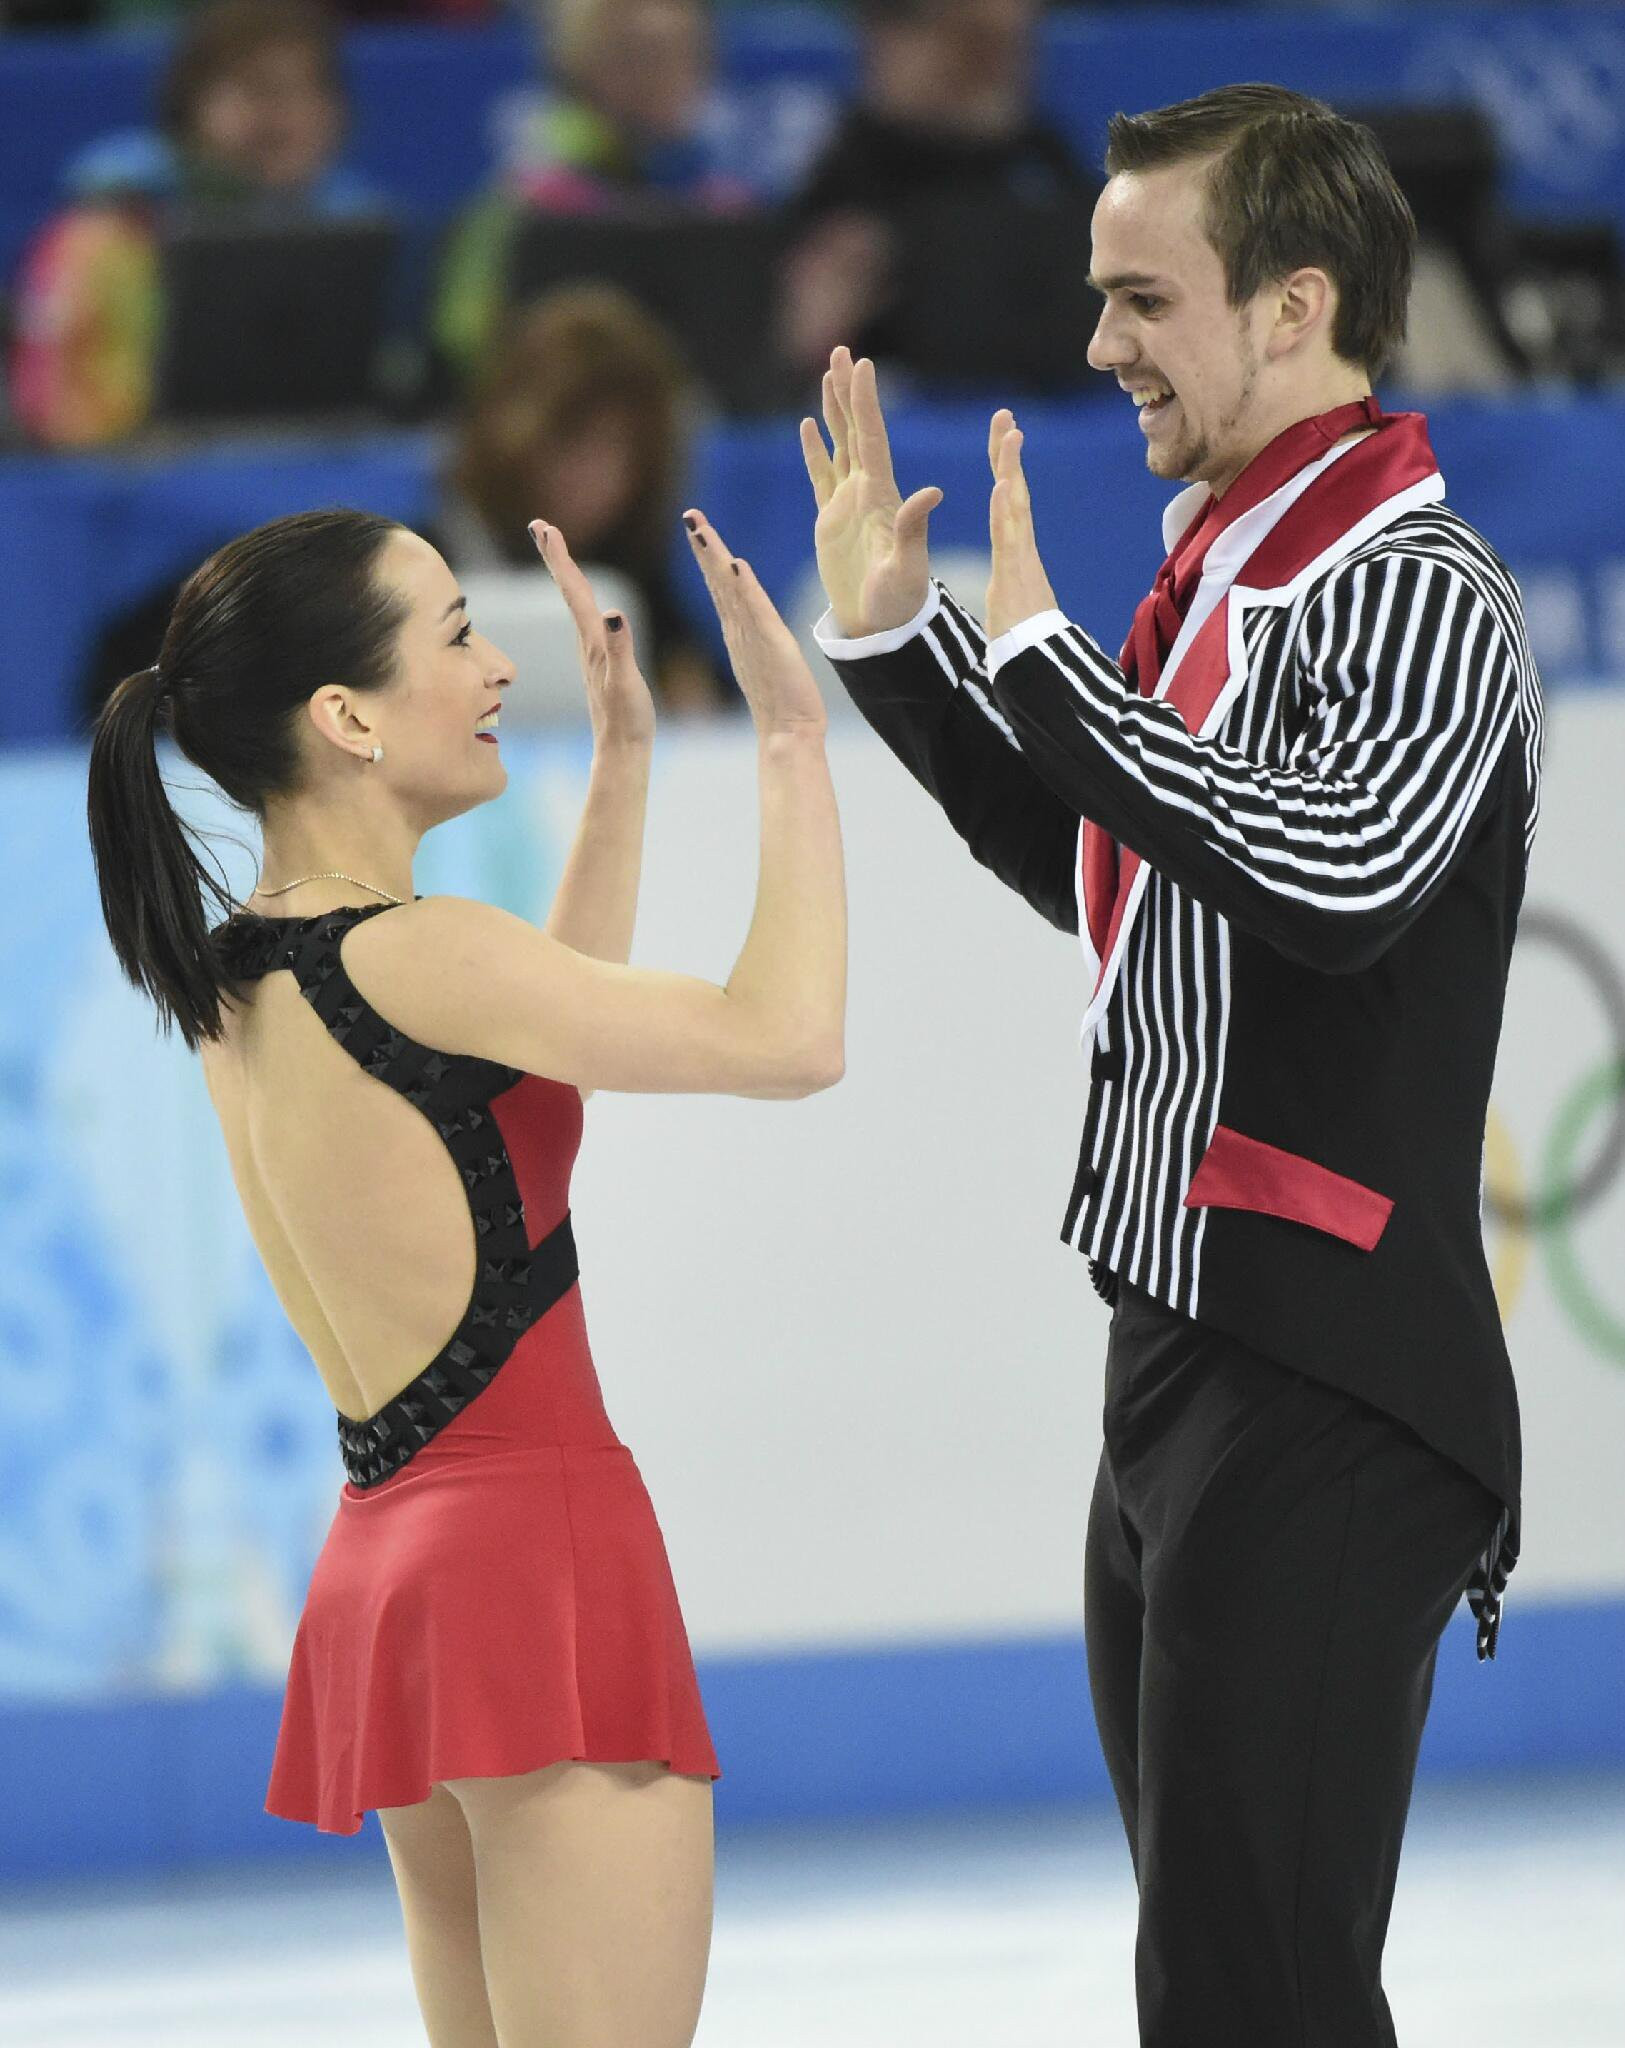 Olympic champion figure skater Klimov appointed to ISU Technical Committee